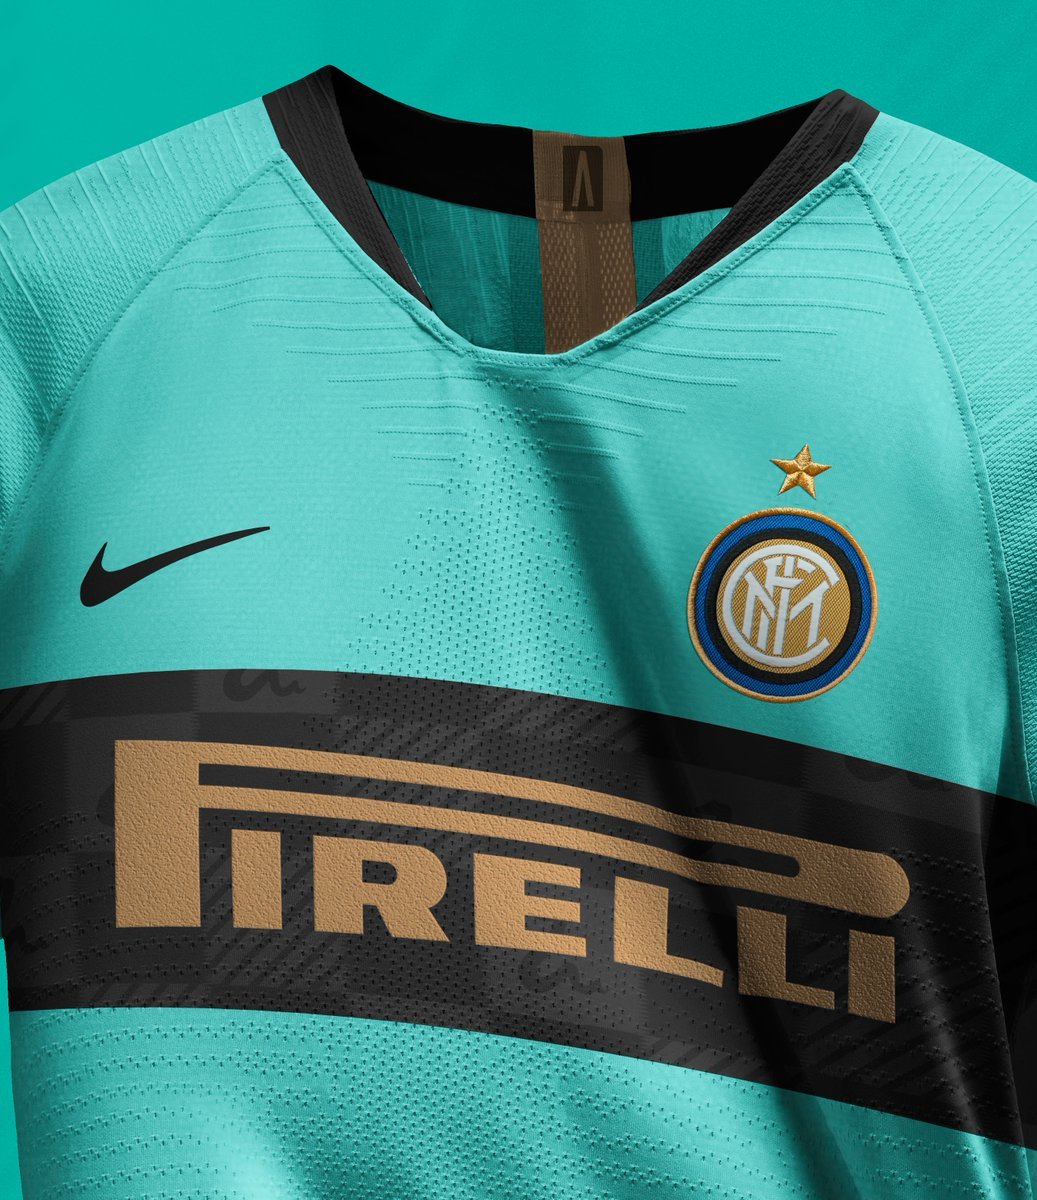 size 40 a2e9b 4de71 Nike Inter Milan 19-20 Away Kit Concept Based on Leaked Info ...